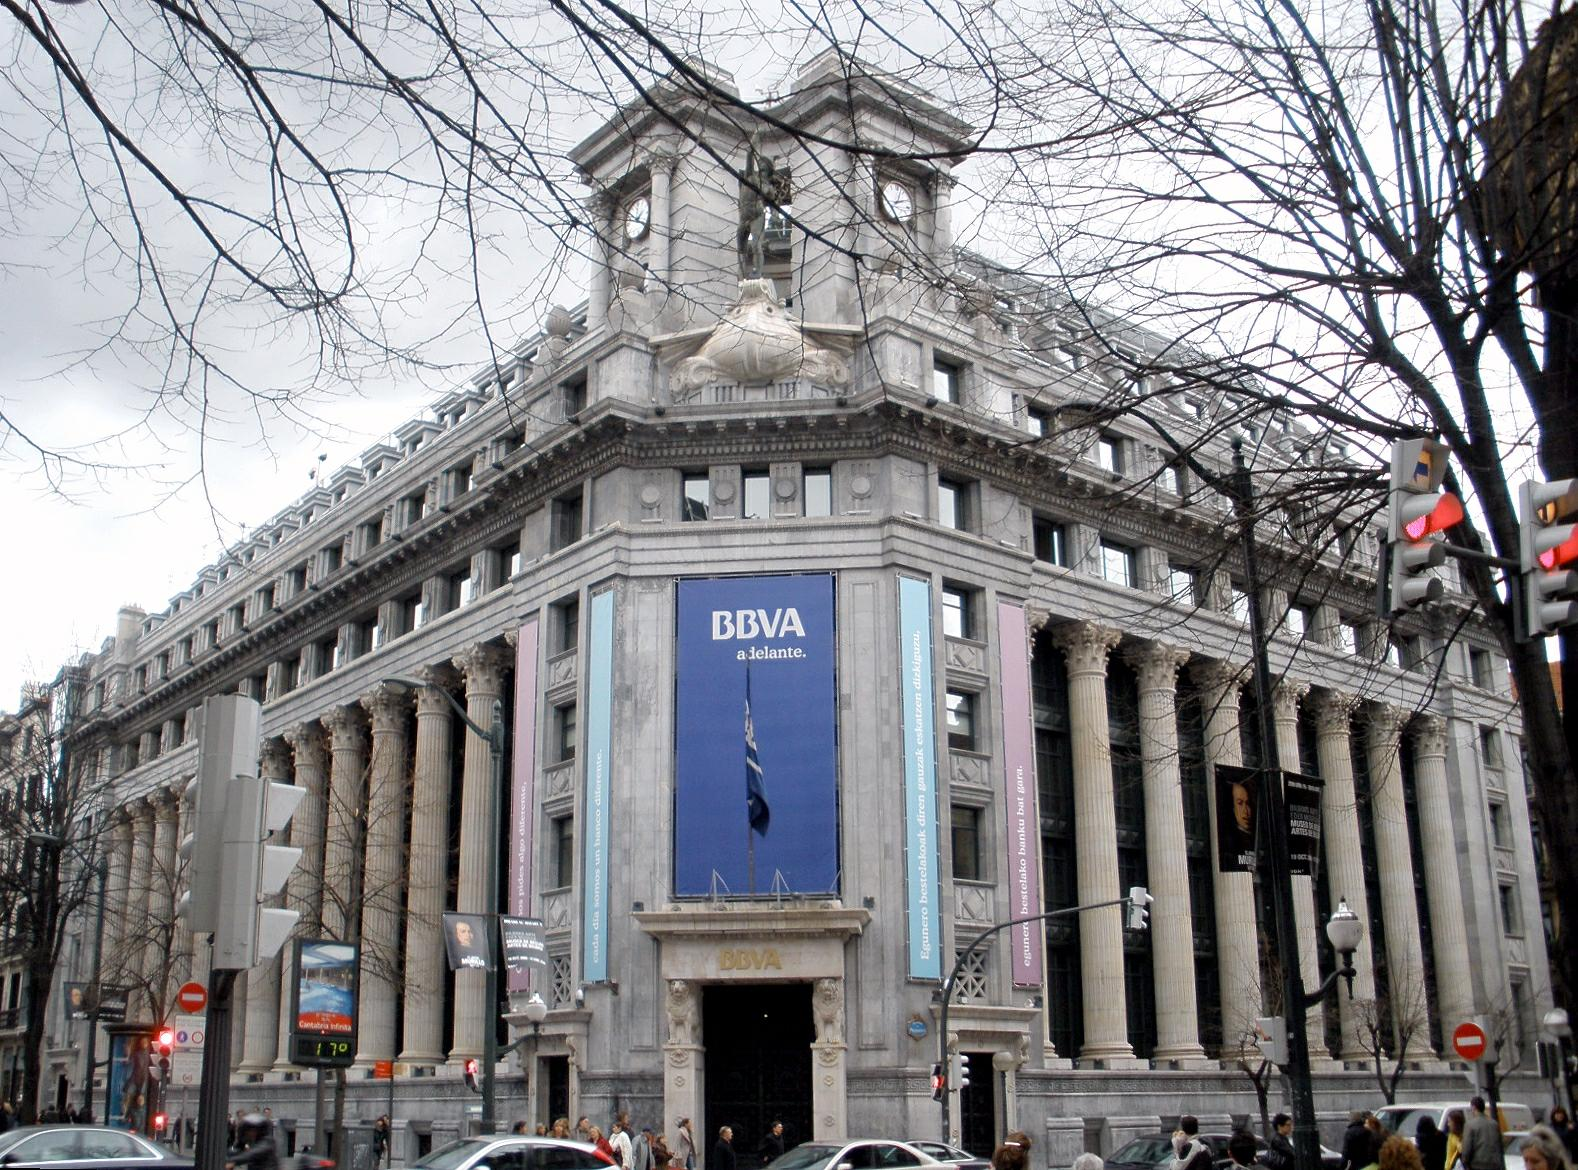 Banco Nationale Di Lavoro : Bbva bank wikiwand